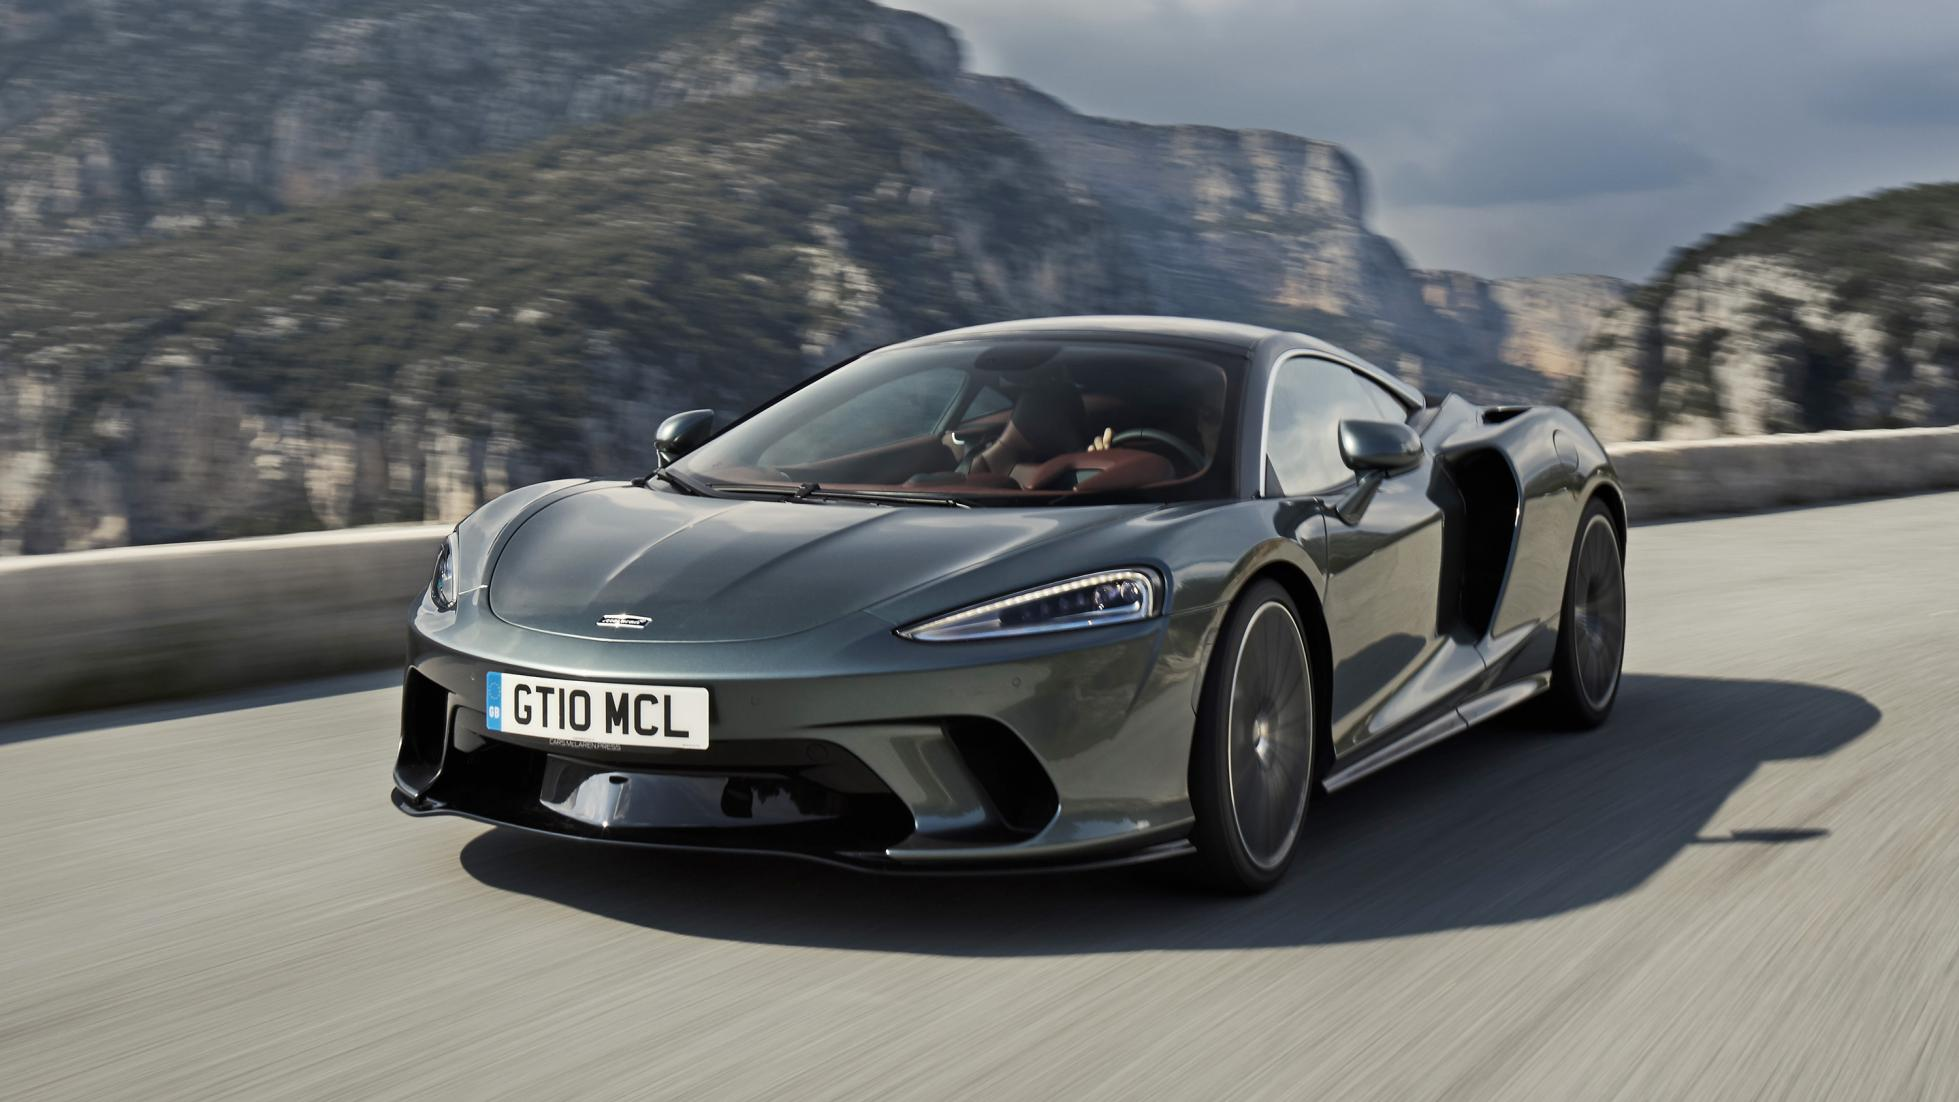 McLaren GT Review: is it really an Aston Martin rival?